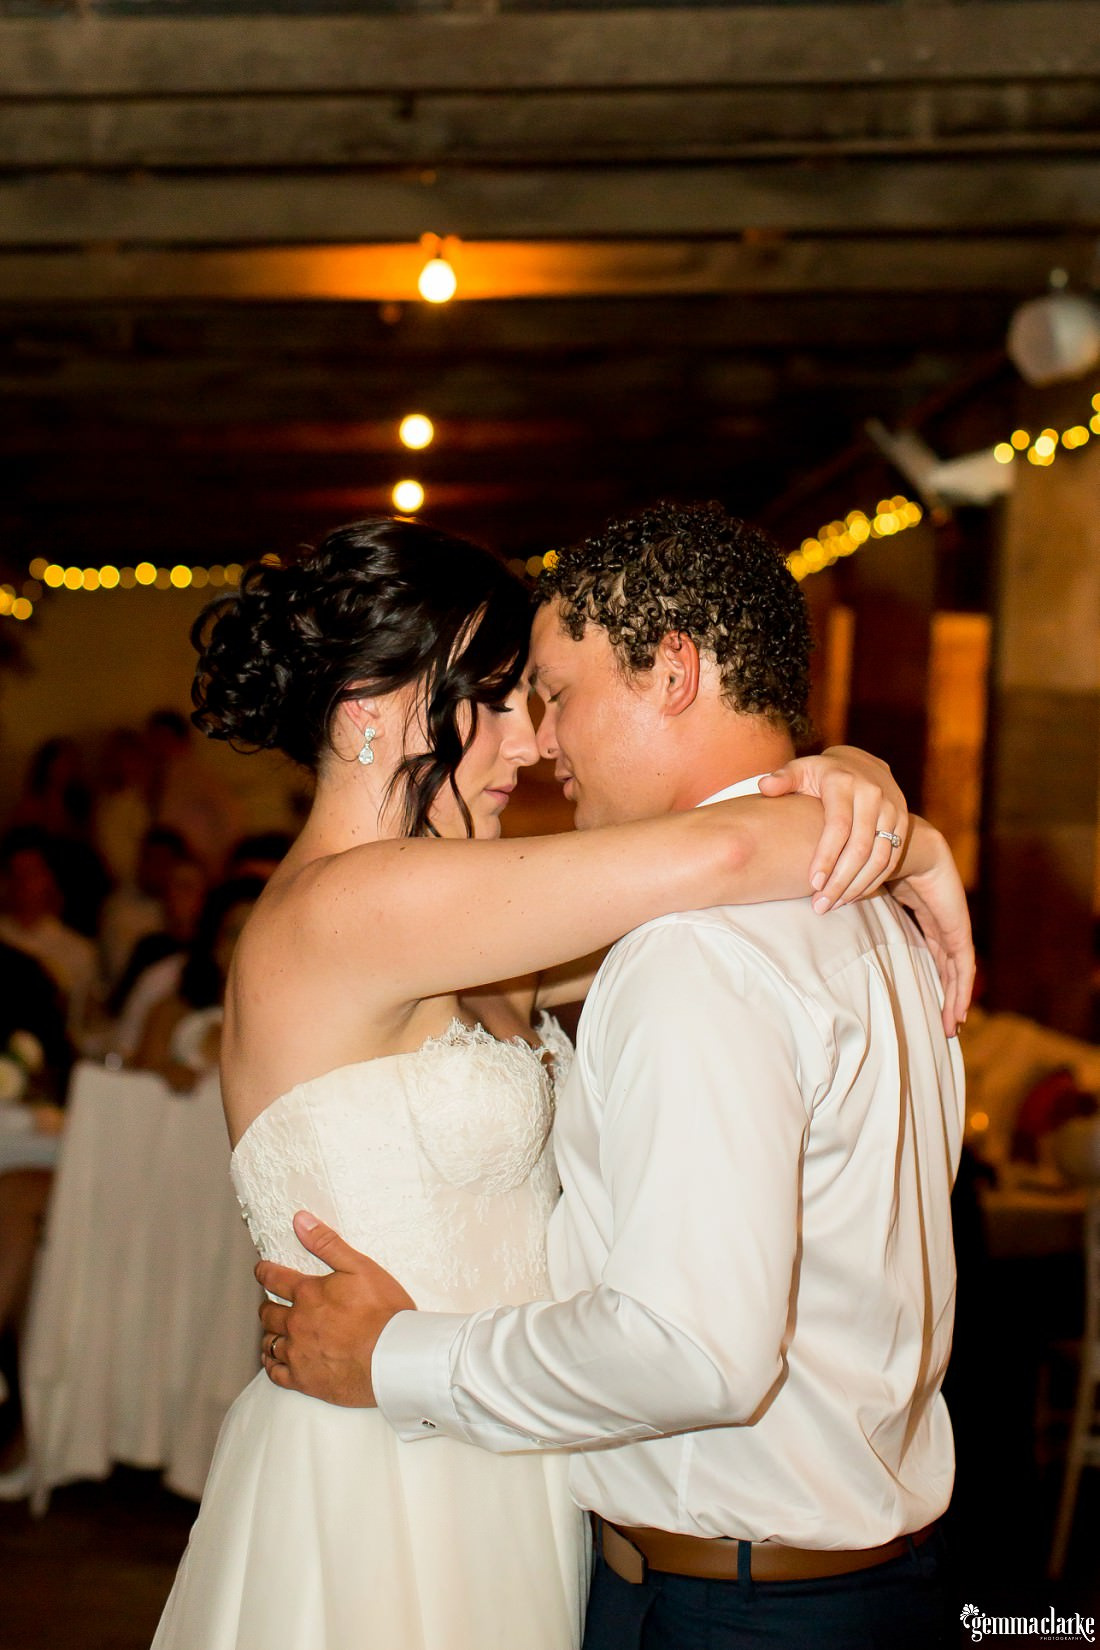 A bride and groom sharing an intimate moment during their first dance at their wedding reception